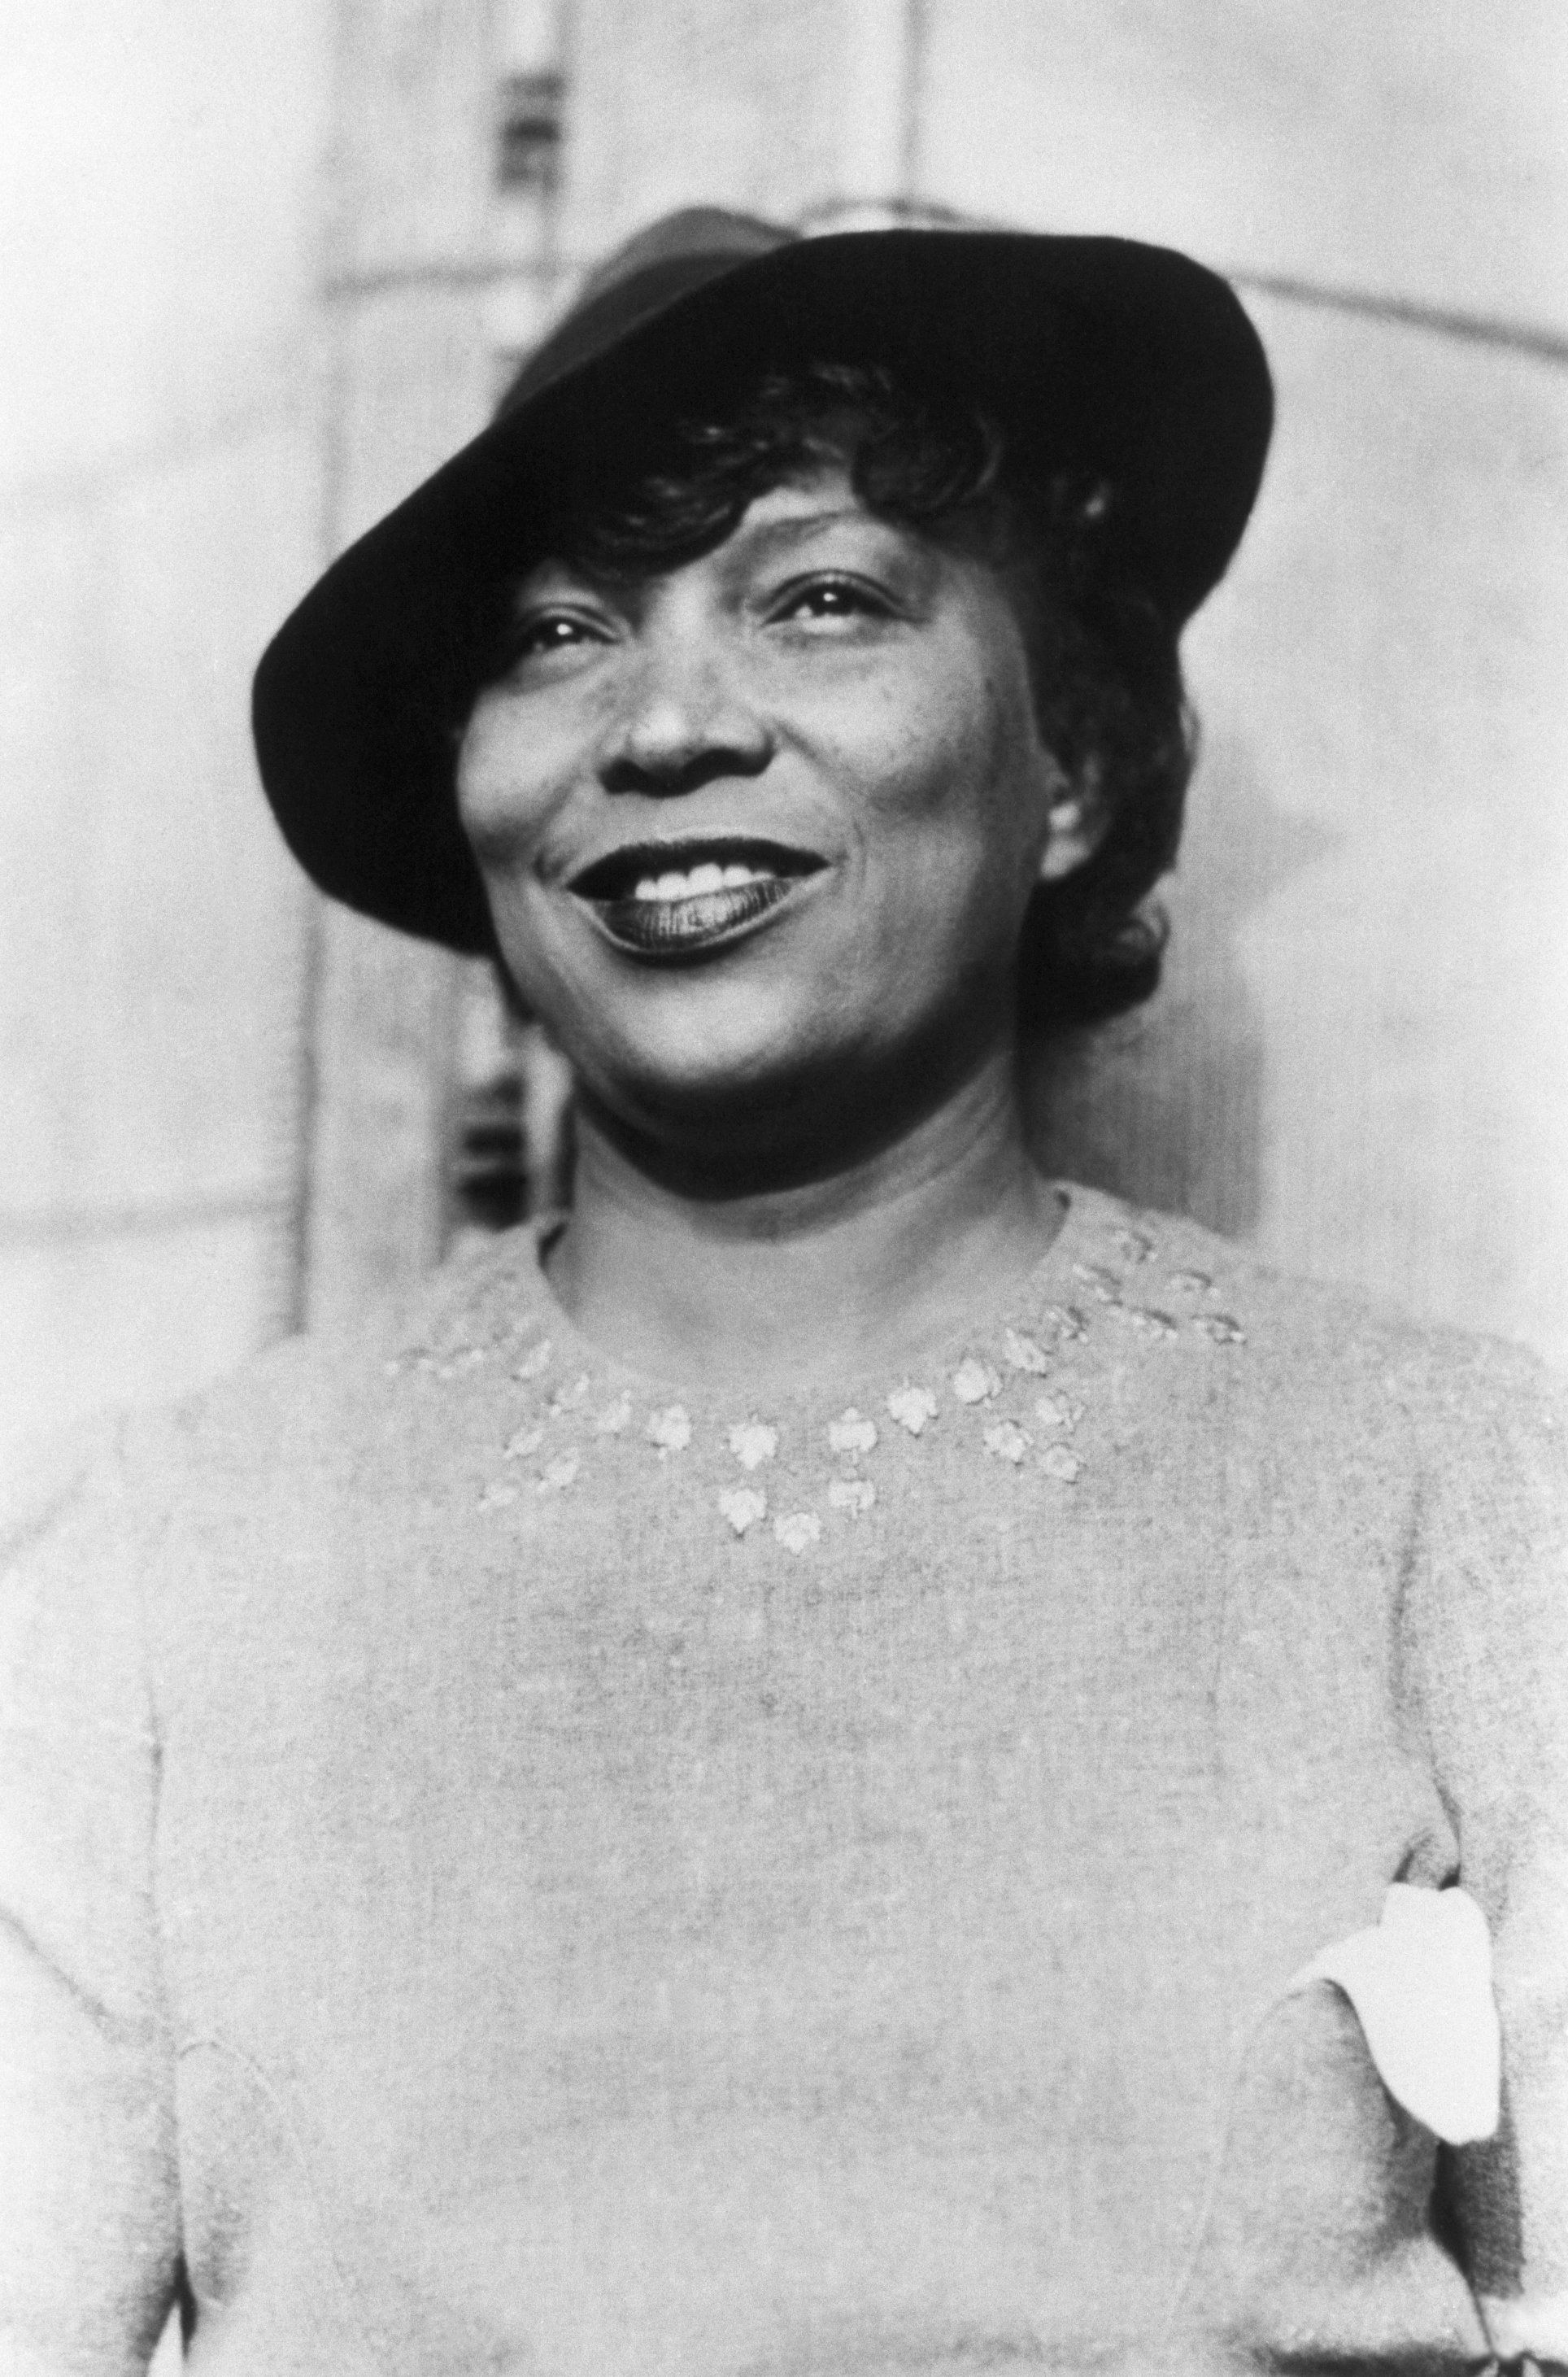 Zora Neale Hurston (1903-1960) studied anthropology under scholar Franz Boas. She wrote several novels, drawing heavily on her knowledge of human development and the African American experience in America. She is best known for Their Eyes Were Watching God. (Photo by © CORBIS/Corbis via Getty Images)